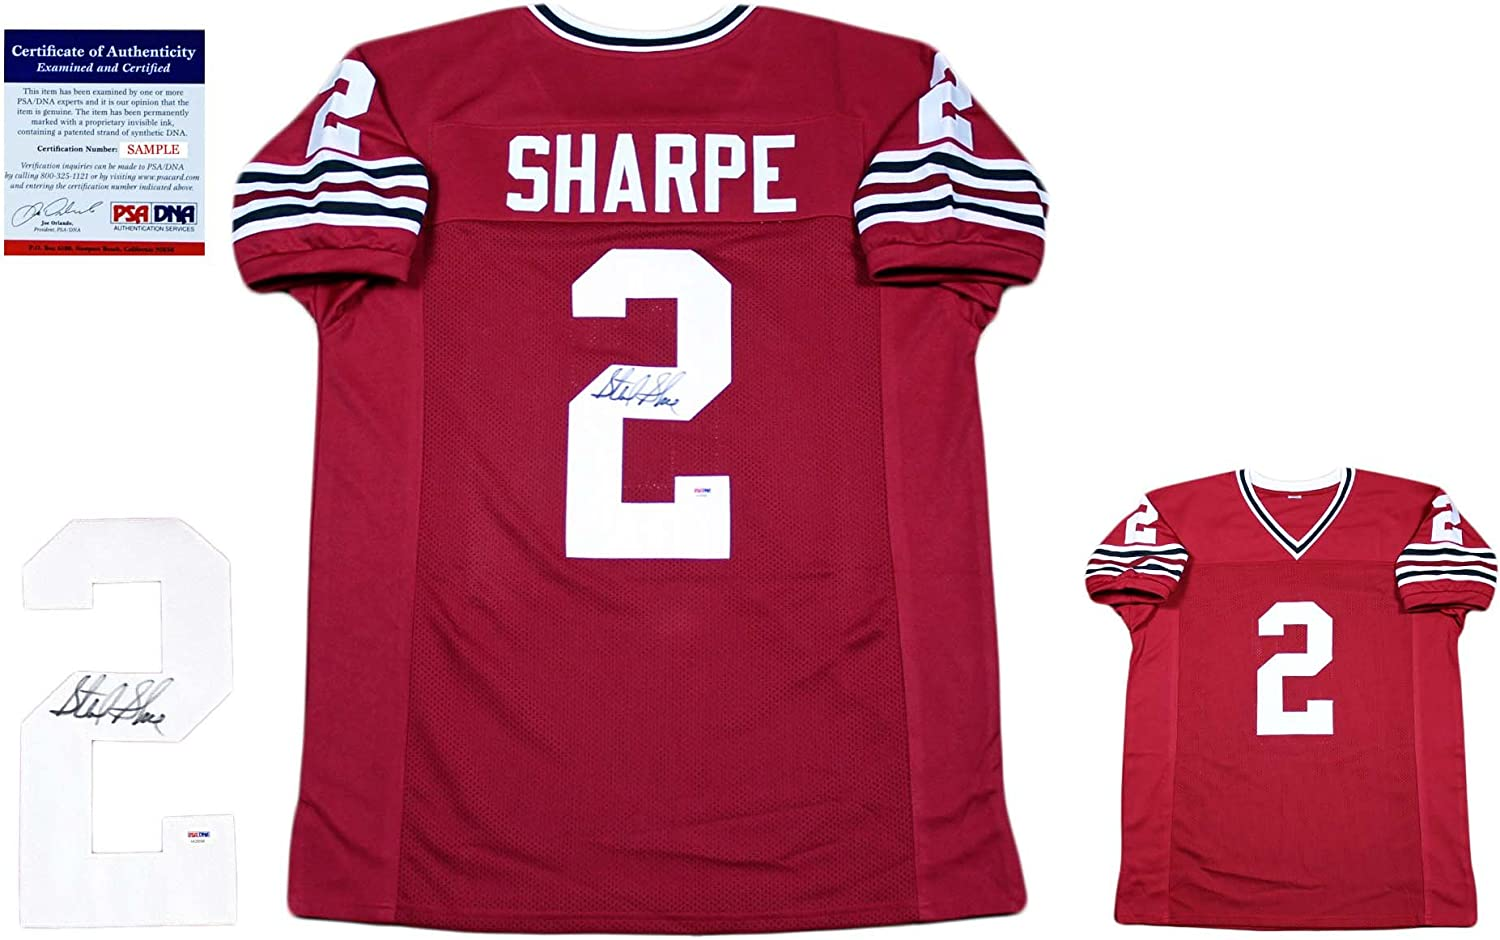 Sterling Sharpe Autographed Signed Custom Jersey - Beckett - Red ...